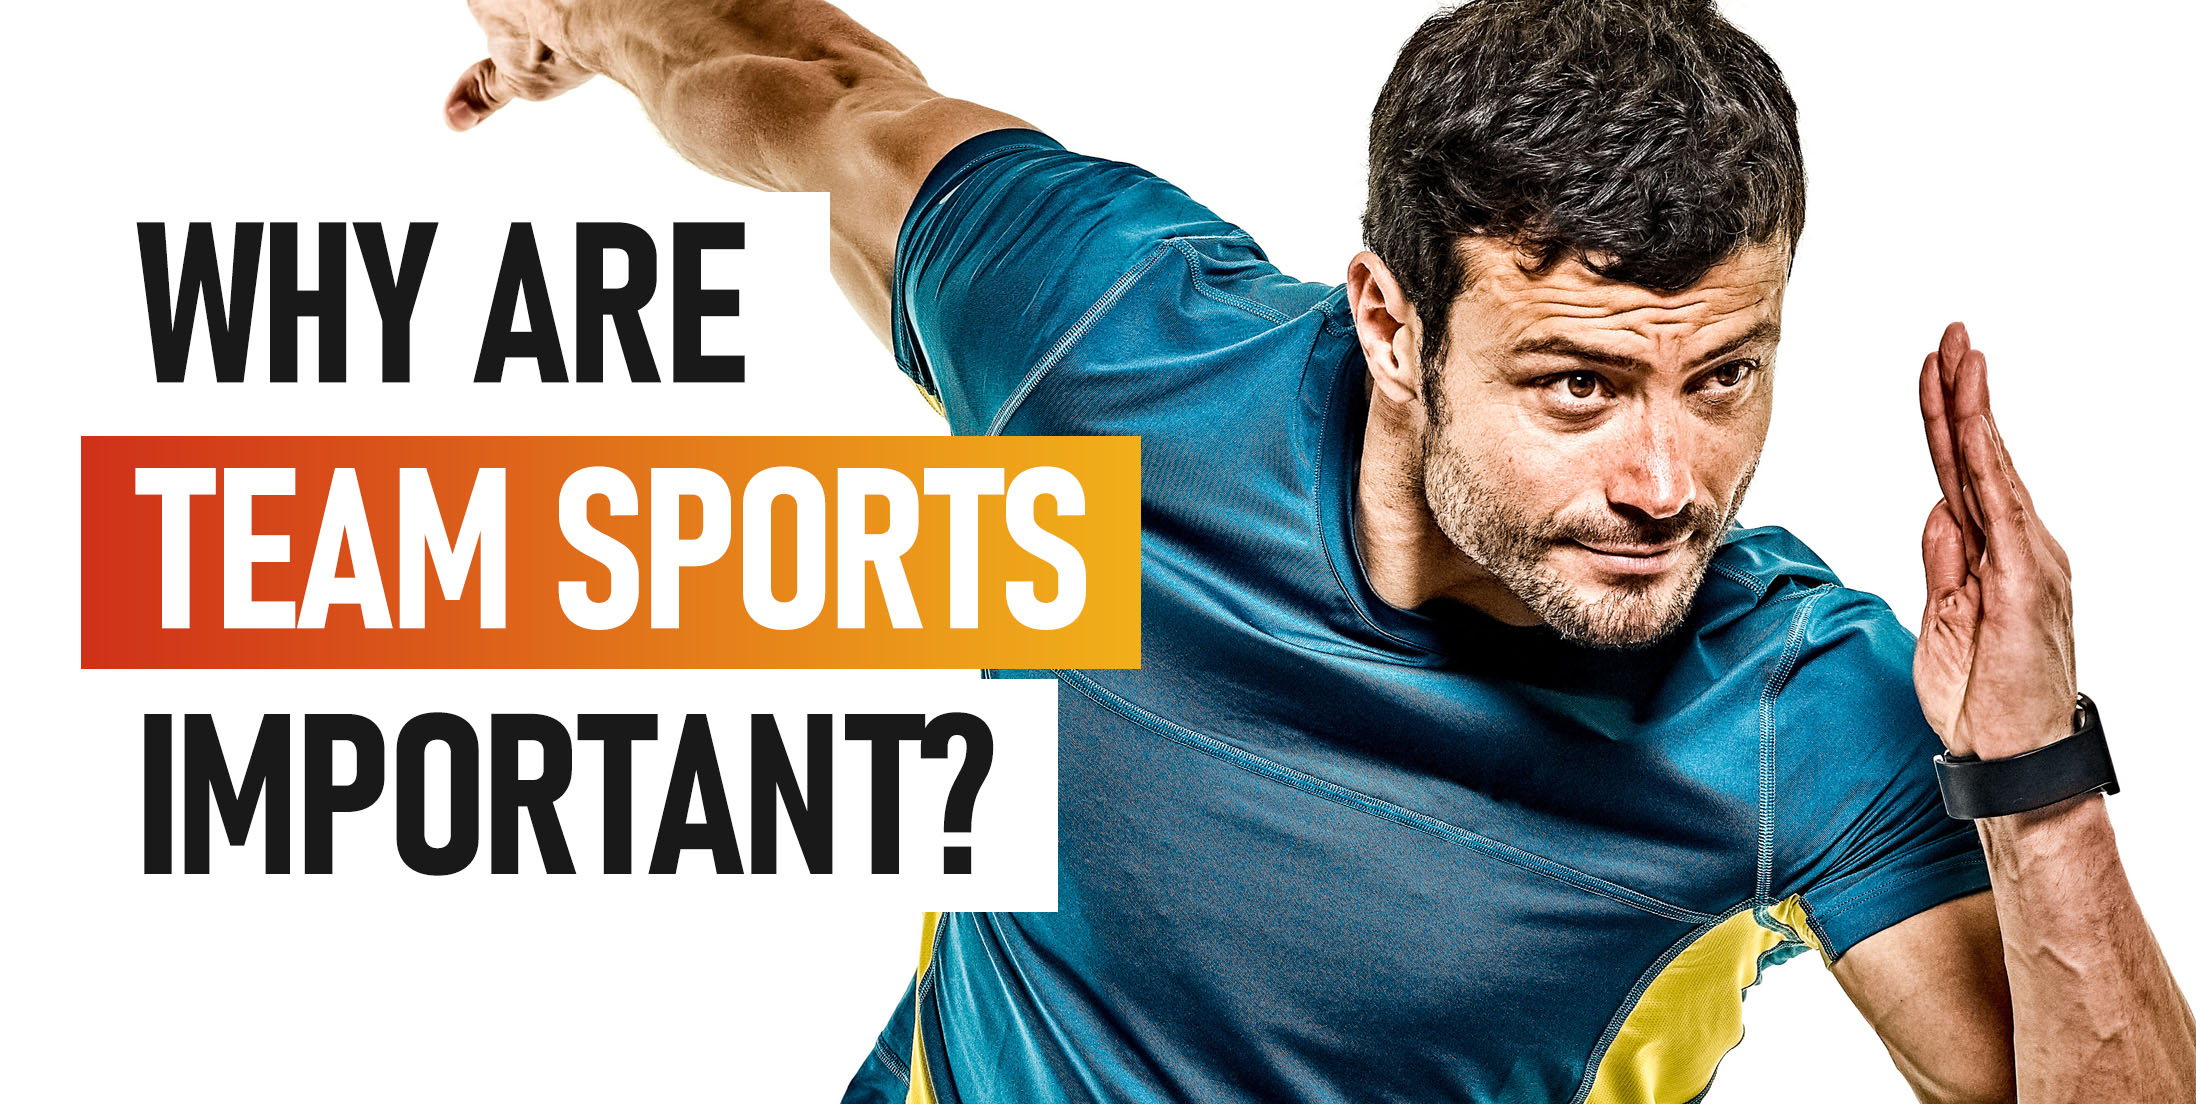 Why Are Team Sports Important?